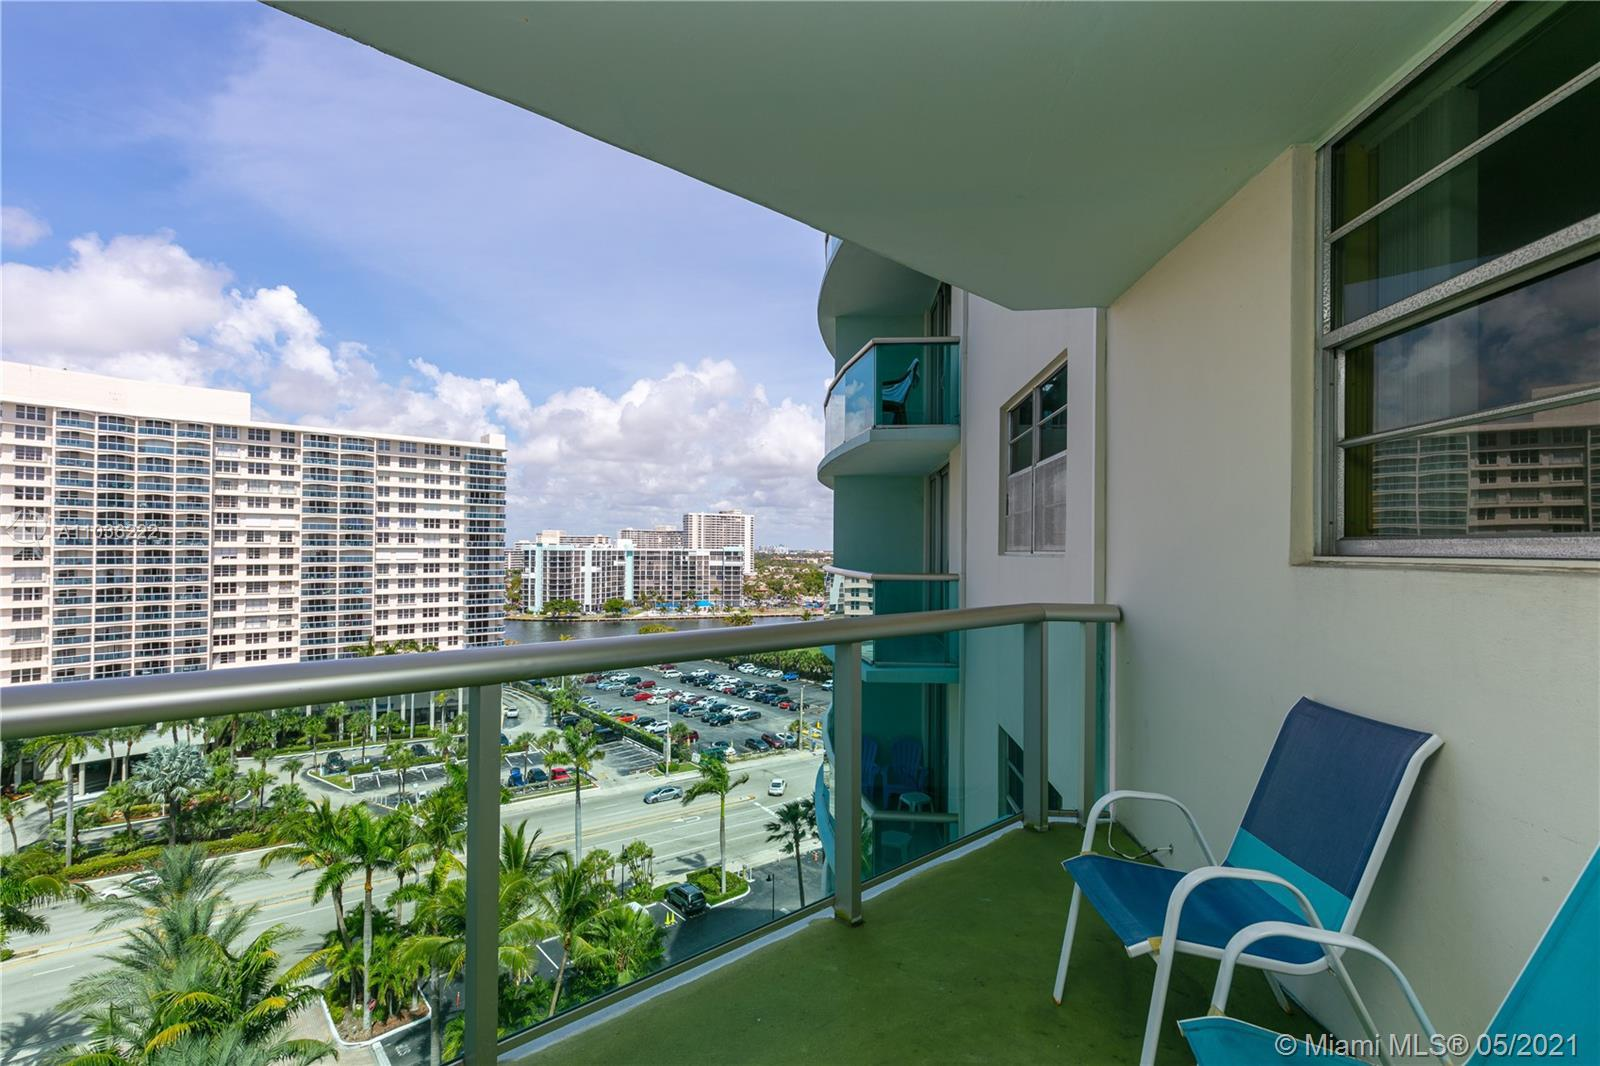 No rental restriction Ocean Front Condo! Bright and cozy 1 br in the heart of Hollywood Beach. Great